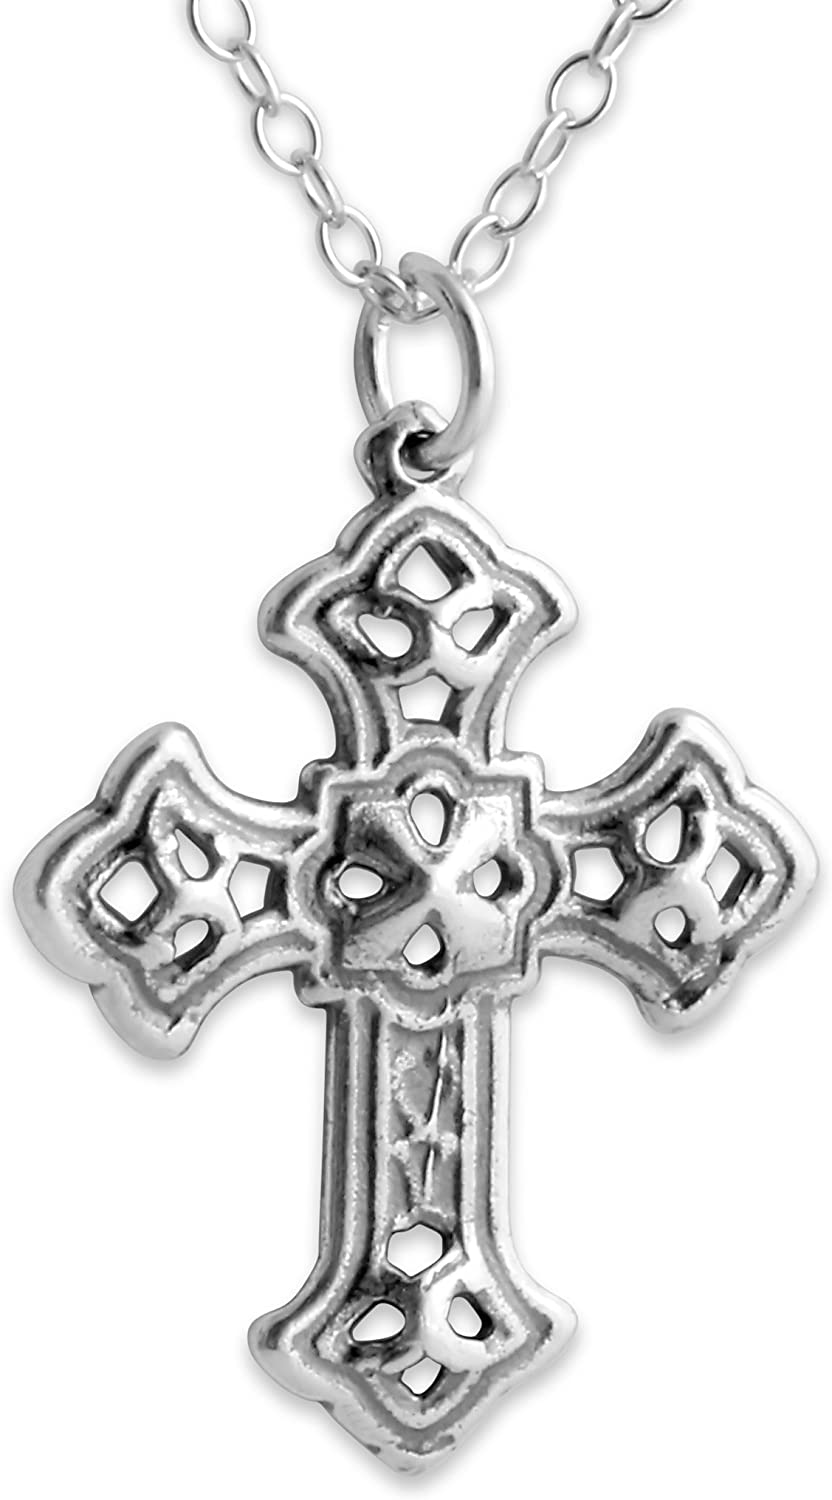 Azaggi Sterling Silver Handcrafted Budded Apostles Cross Necklace